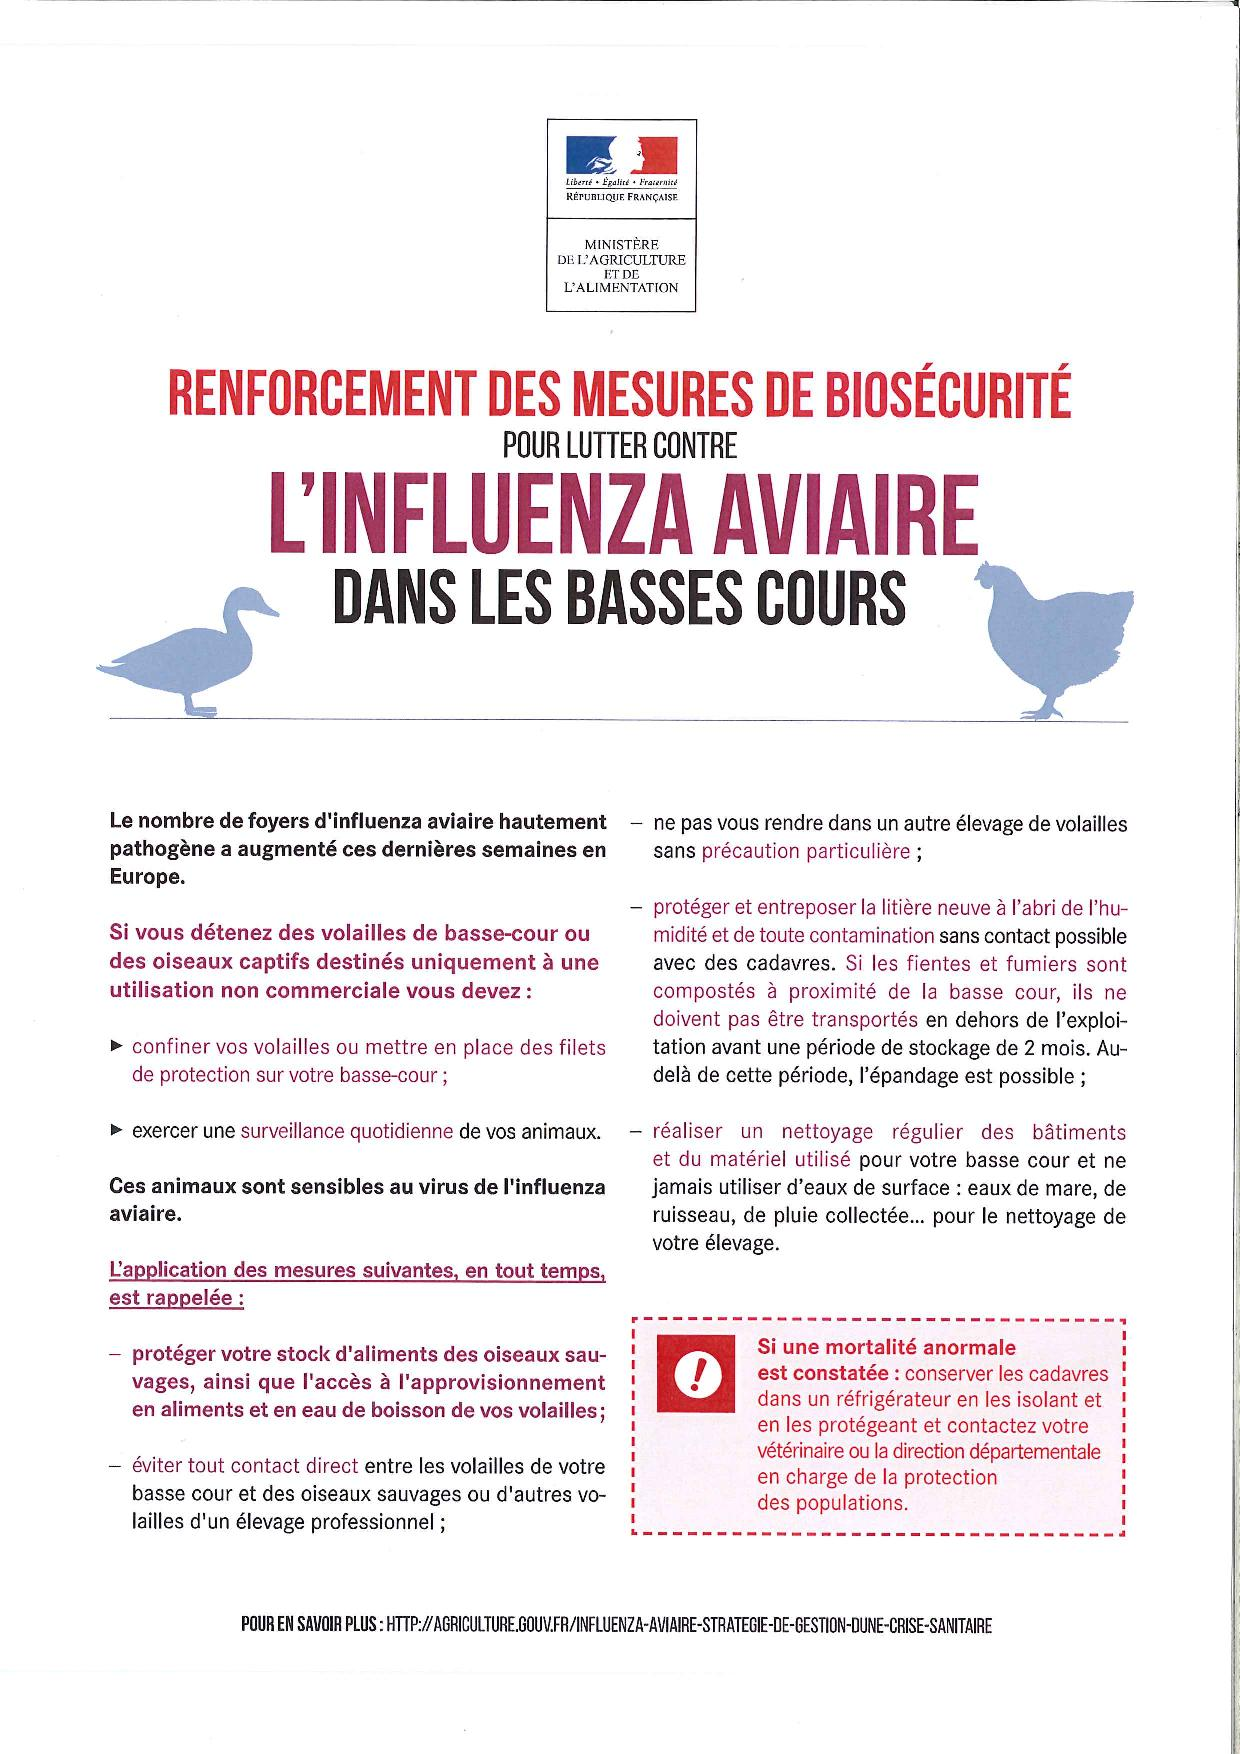 affiche influenza aviaire-page-001